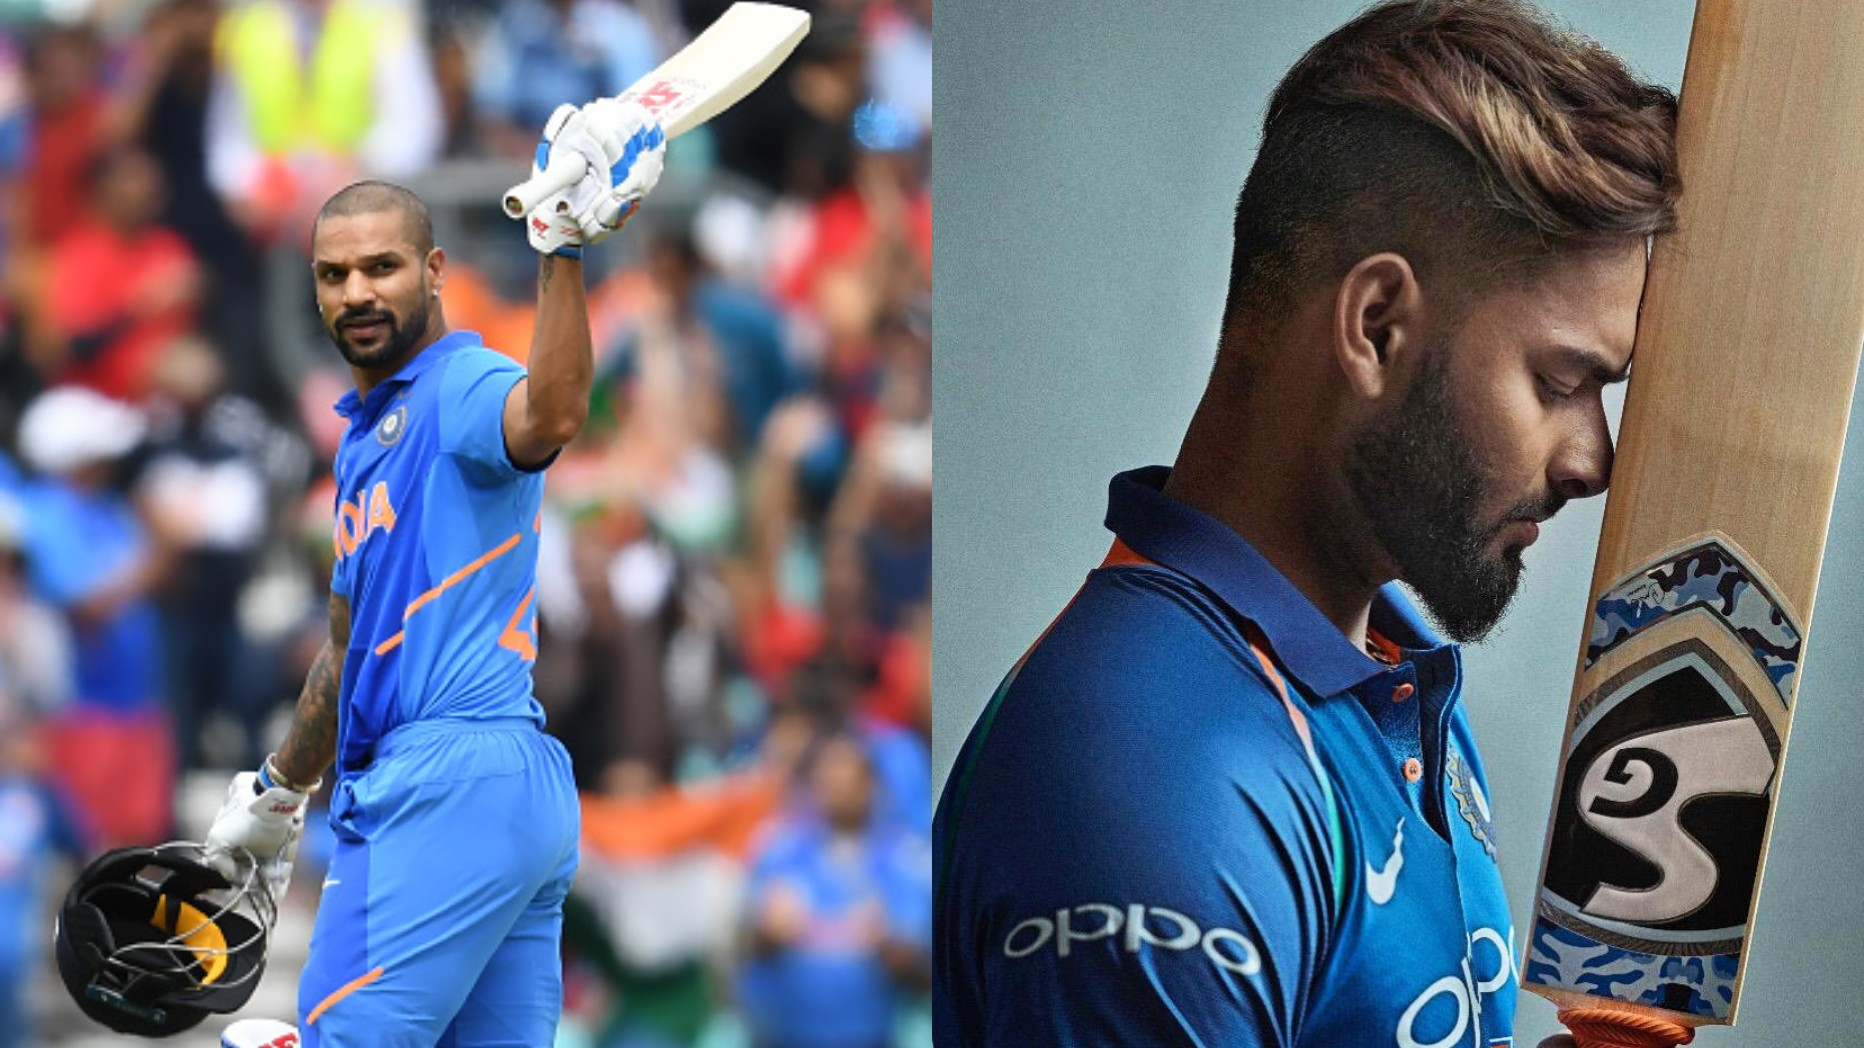 CWC 2019: Shikhar Dhawan ruled out of tournament due to fractured thumb; Pant to replace him